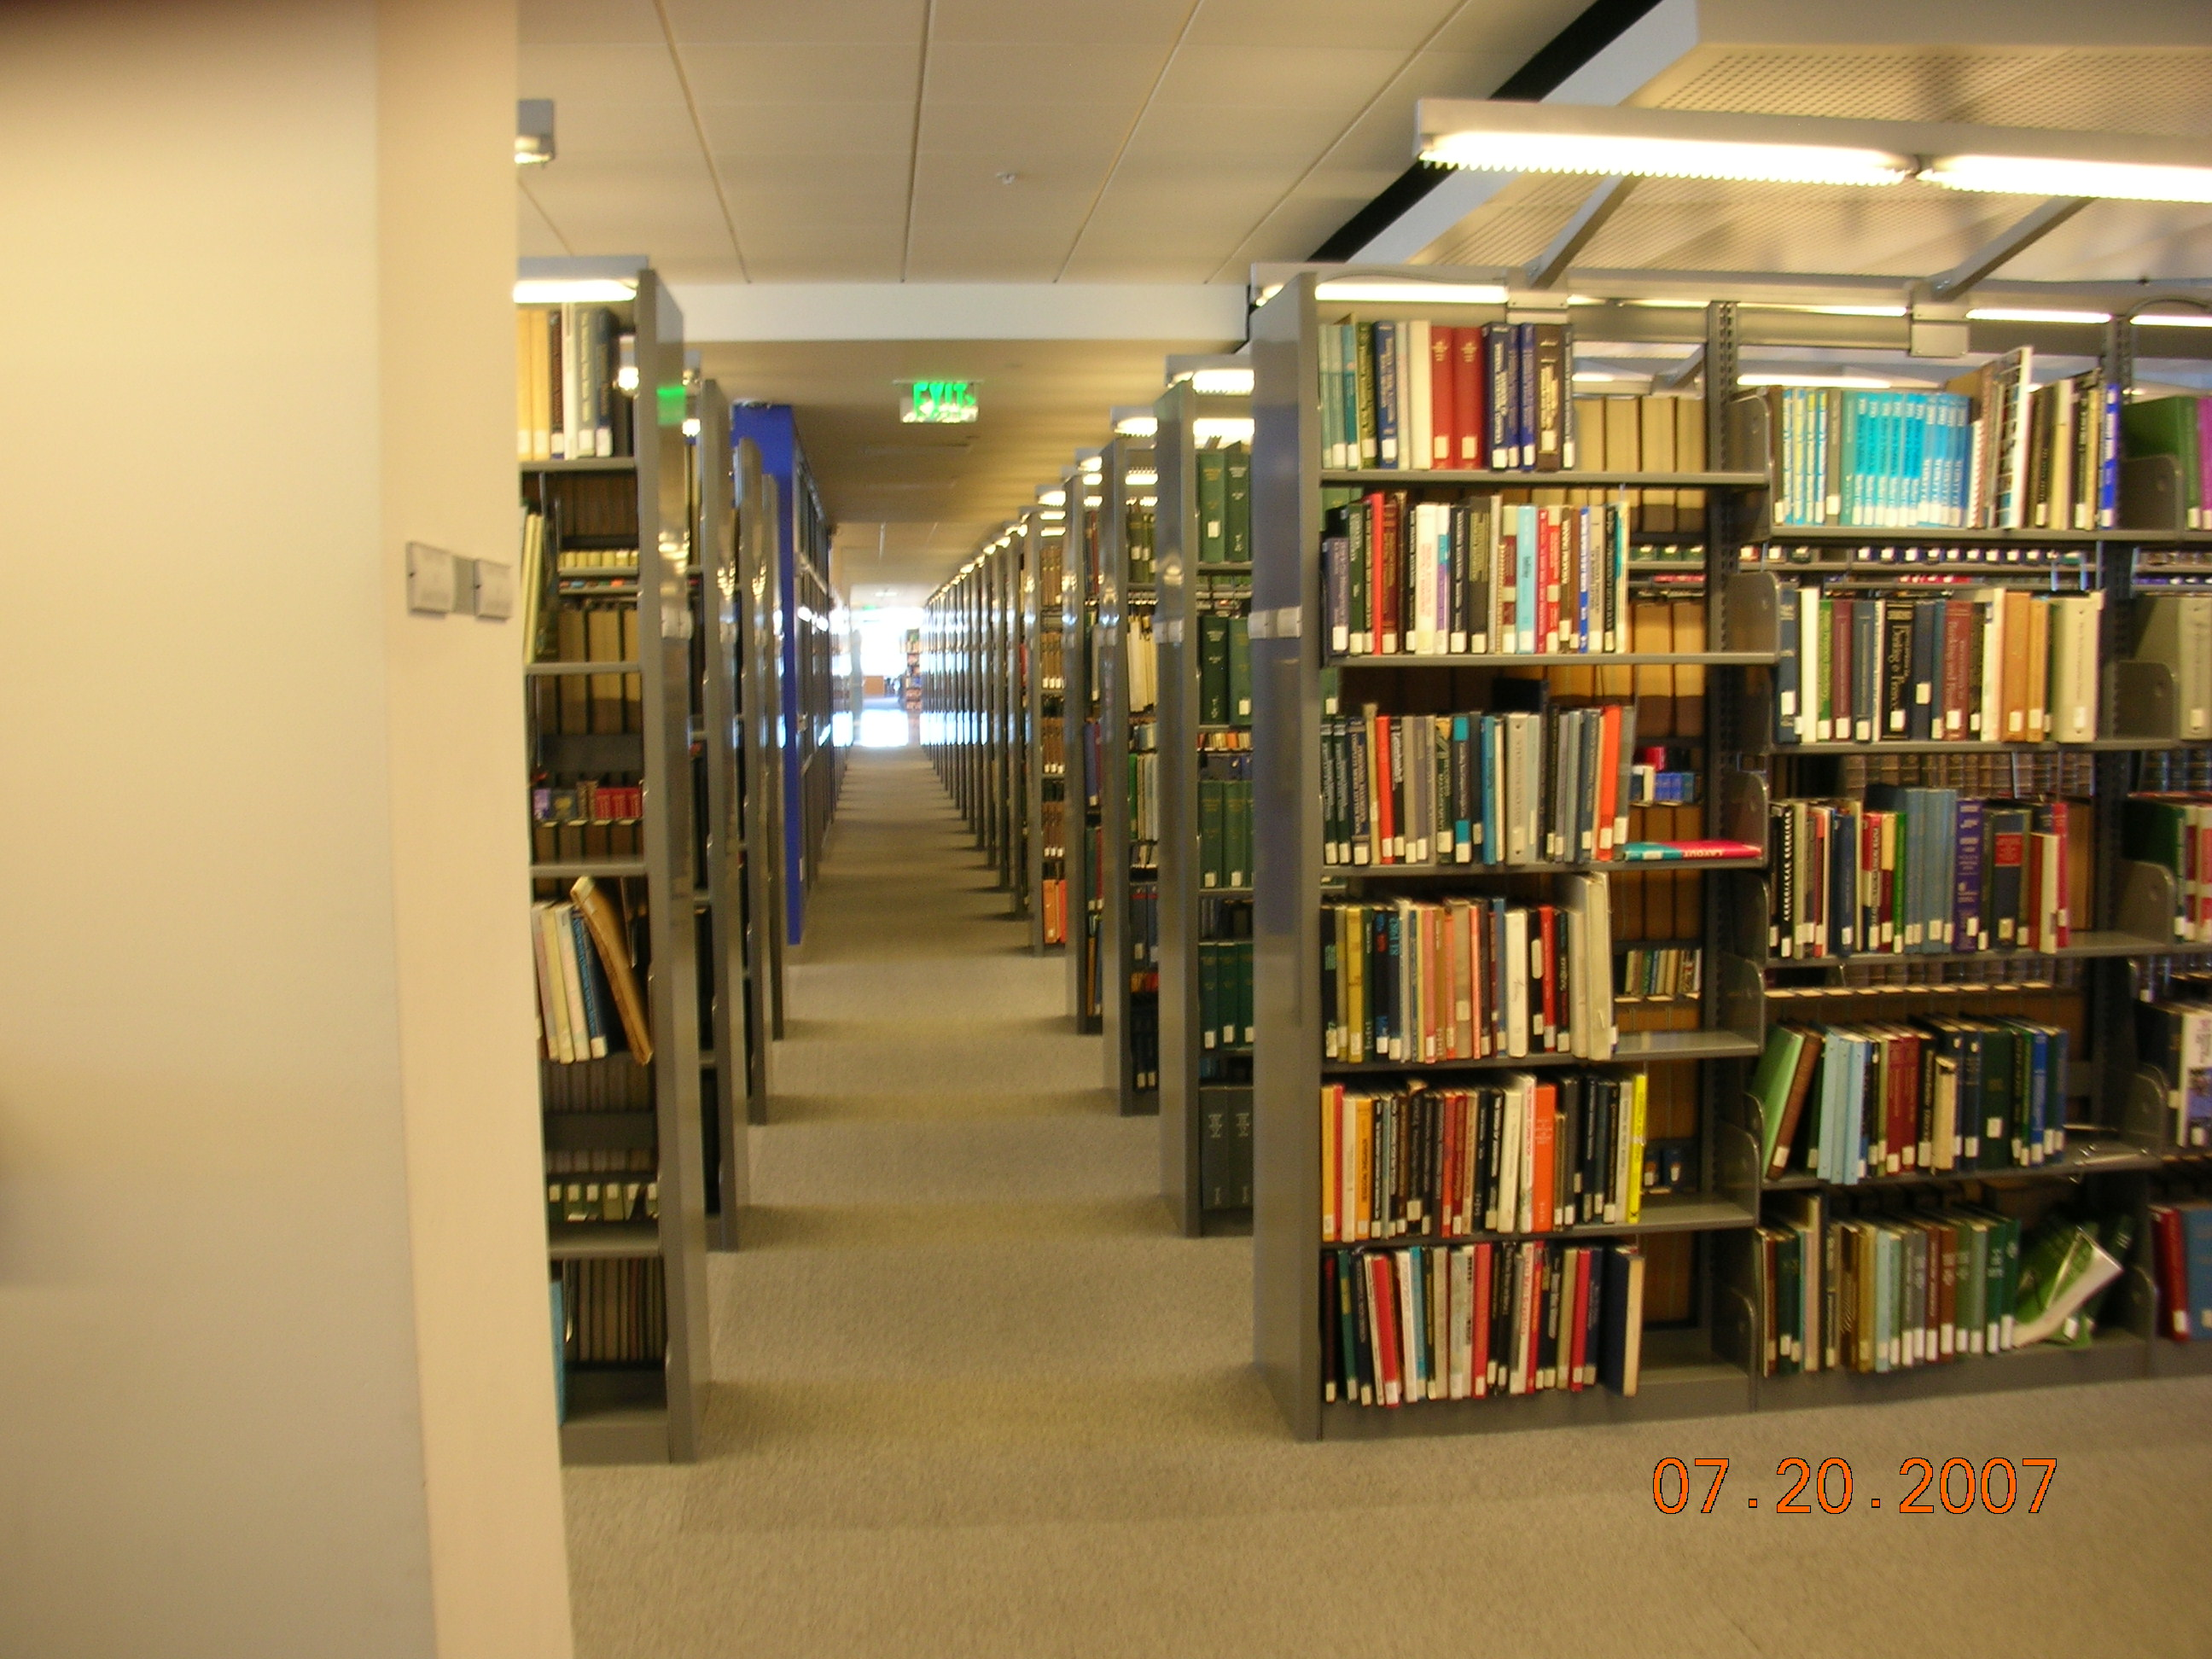 File Bookshelves On The Eighth Floor Of The Martin Luther King Jr Library Part Of San Jose